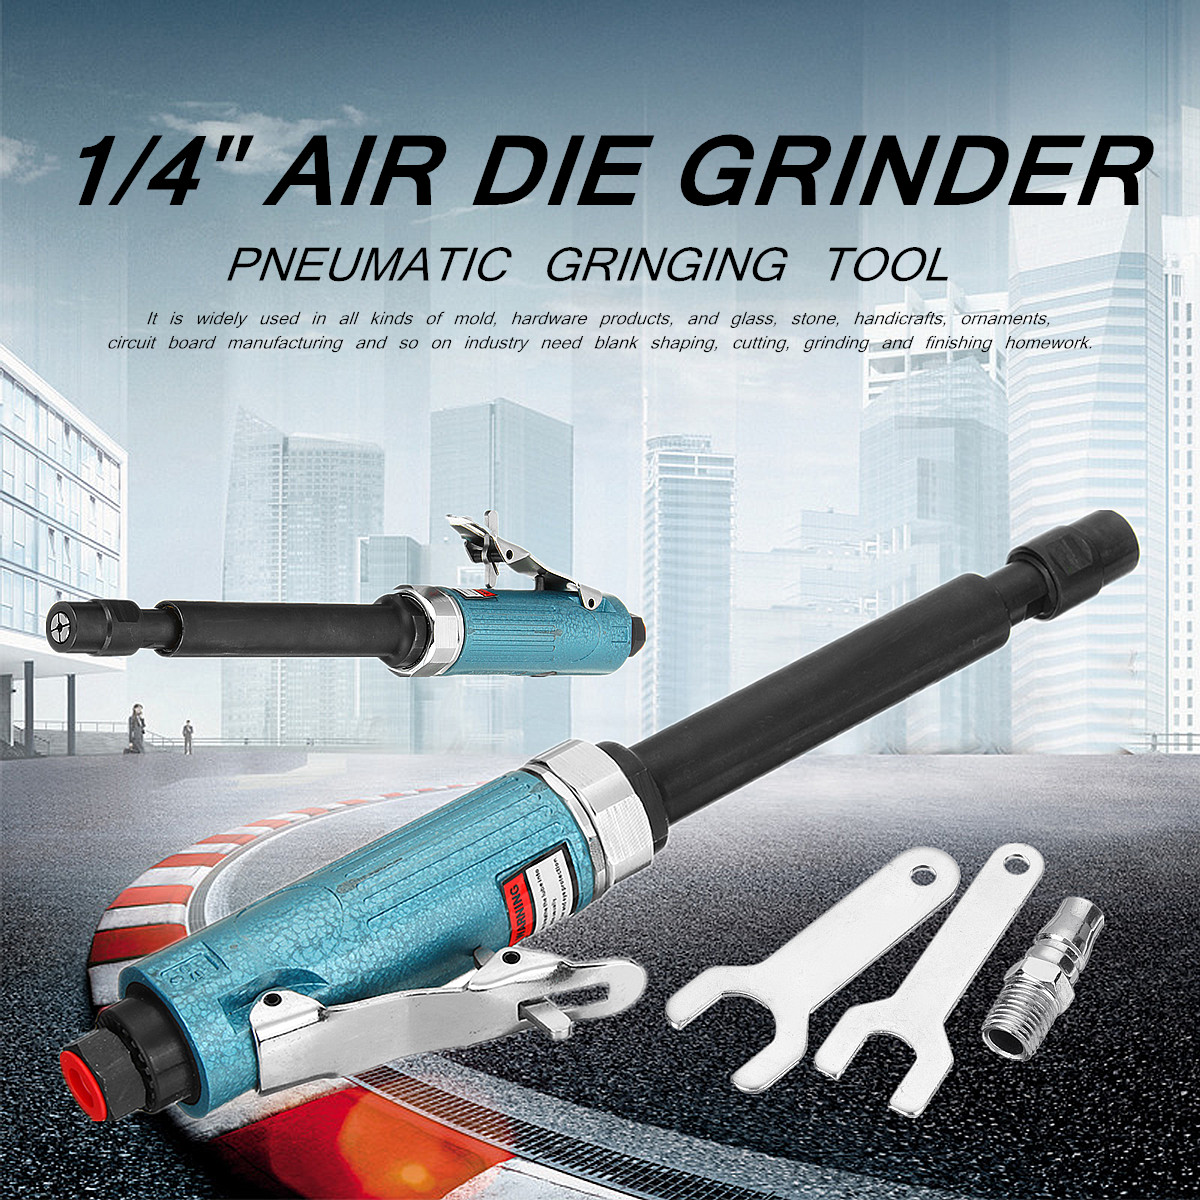 AG-307 Air Pressure 90 PSI 11 Extended Shaft 1/4 Long Air Die Grinder 20000Rpm Pneumatic Grinding Tool High Speed Low Noise ag 307 air pressure 90 psi 11 extended shaft 1 4 long air die grinder 20000rpm pneumatic grinding tool high speed low noise